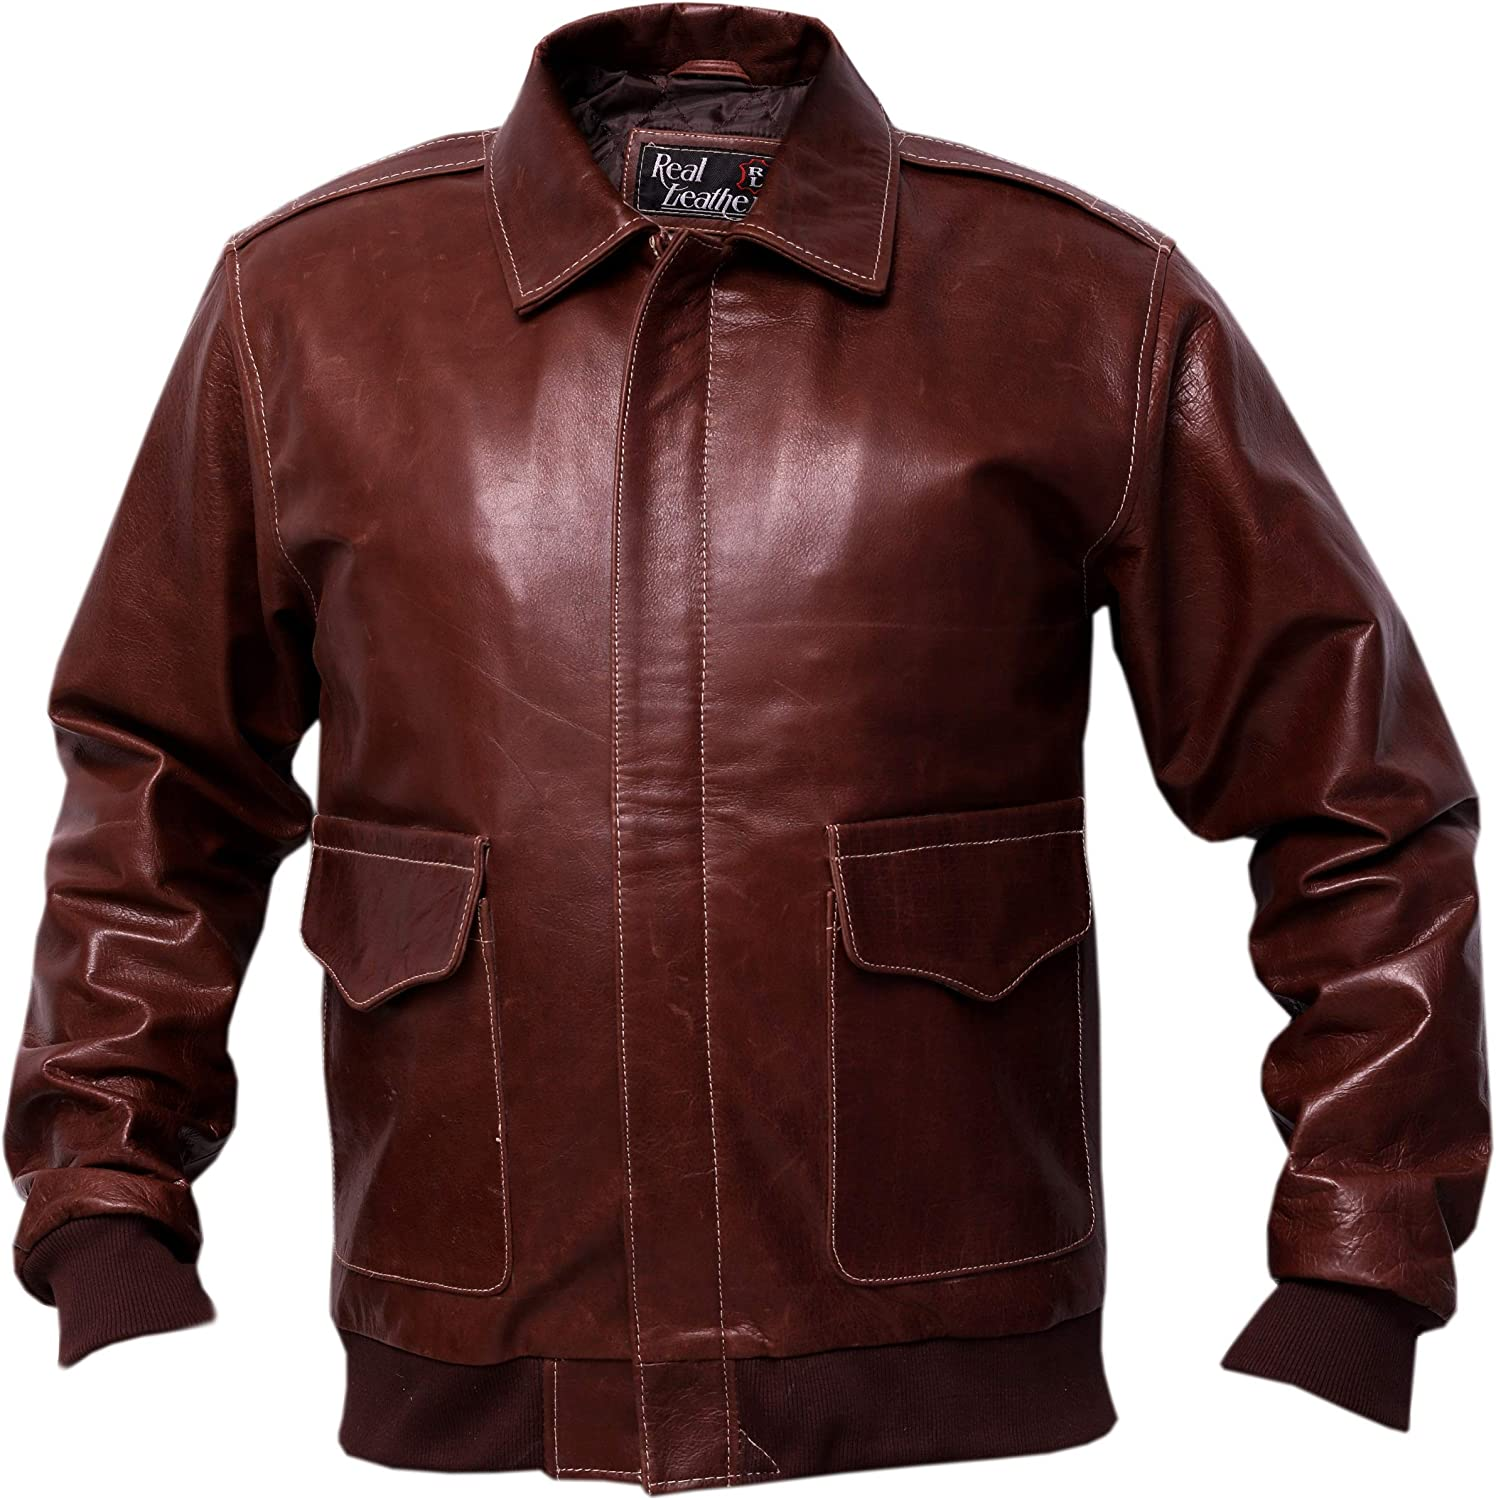 A2 Brown Distressed Cowhide Leather Bomber Aviator Jacket